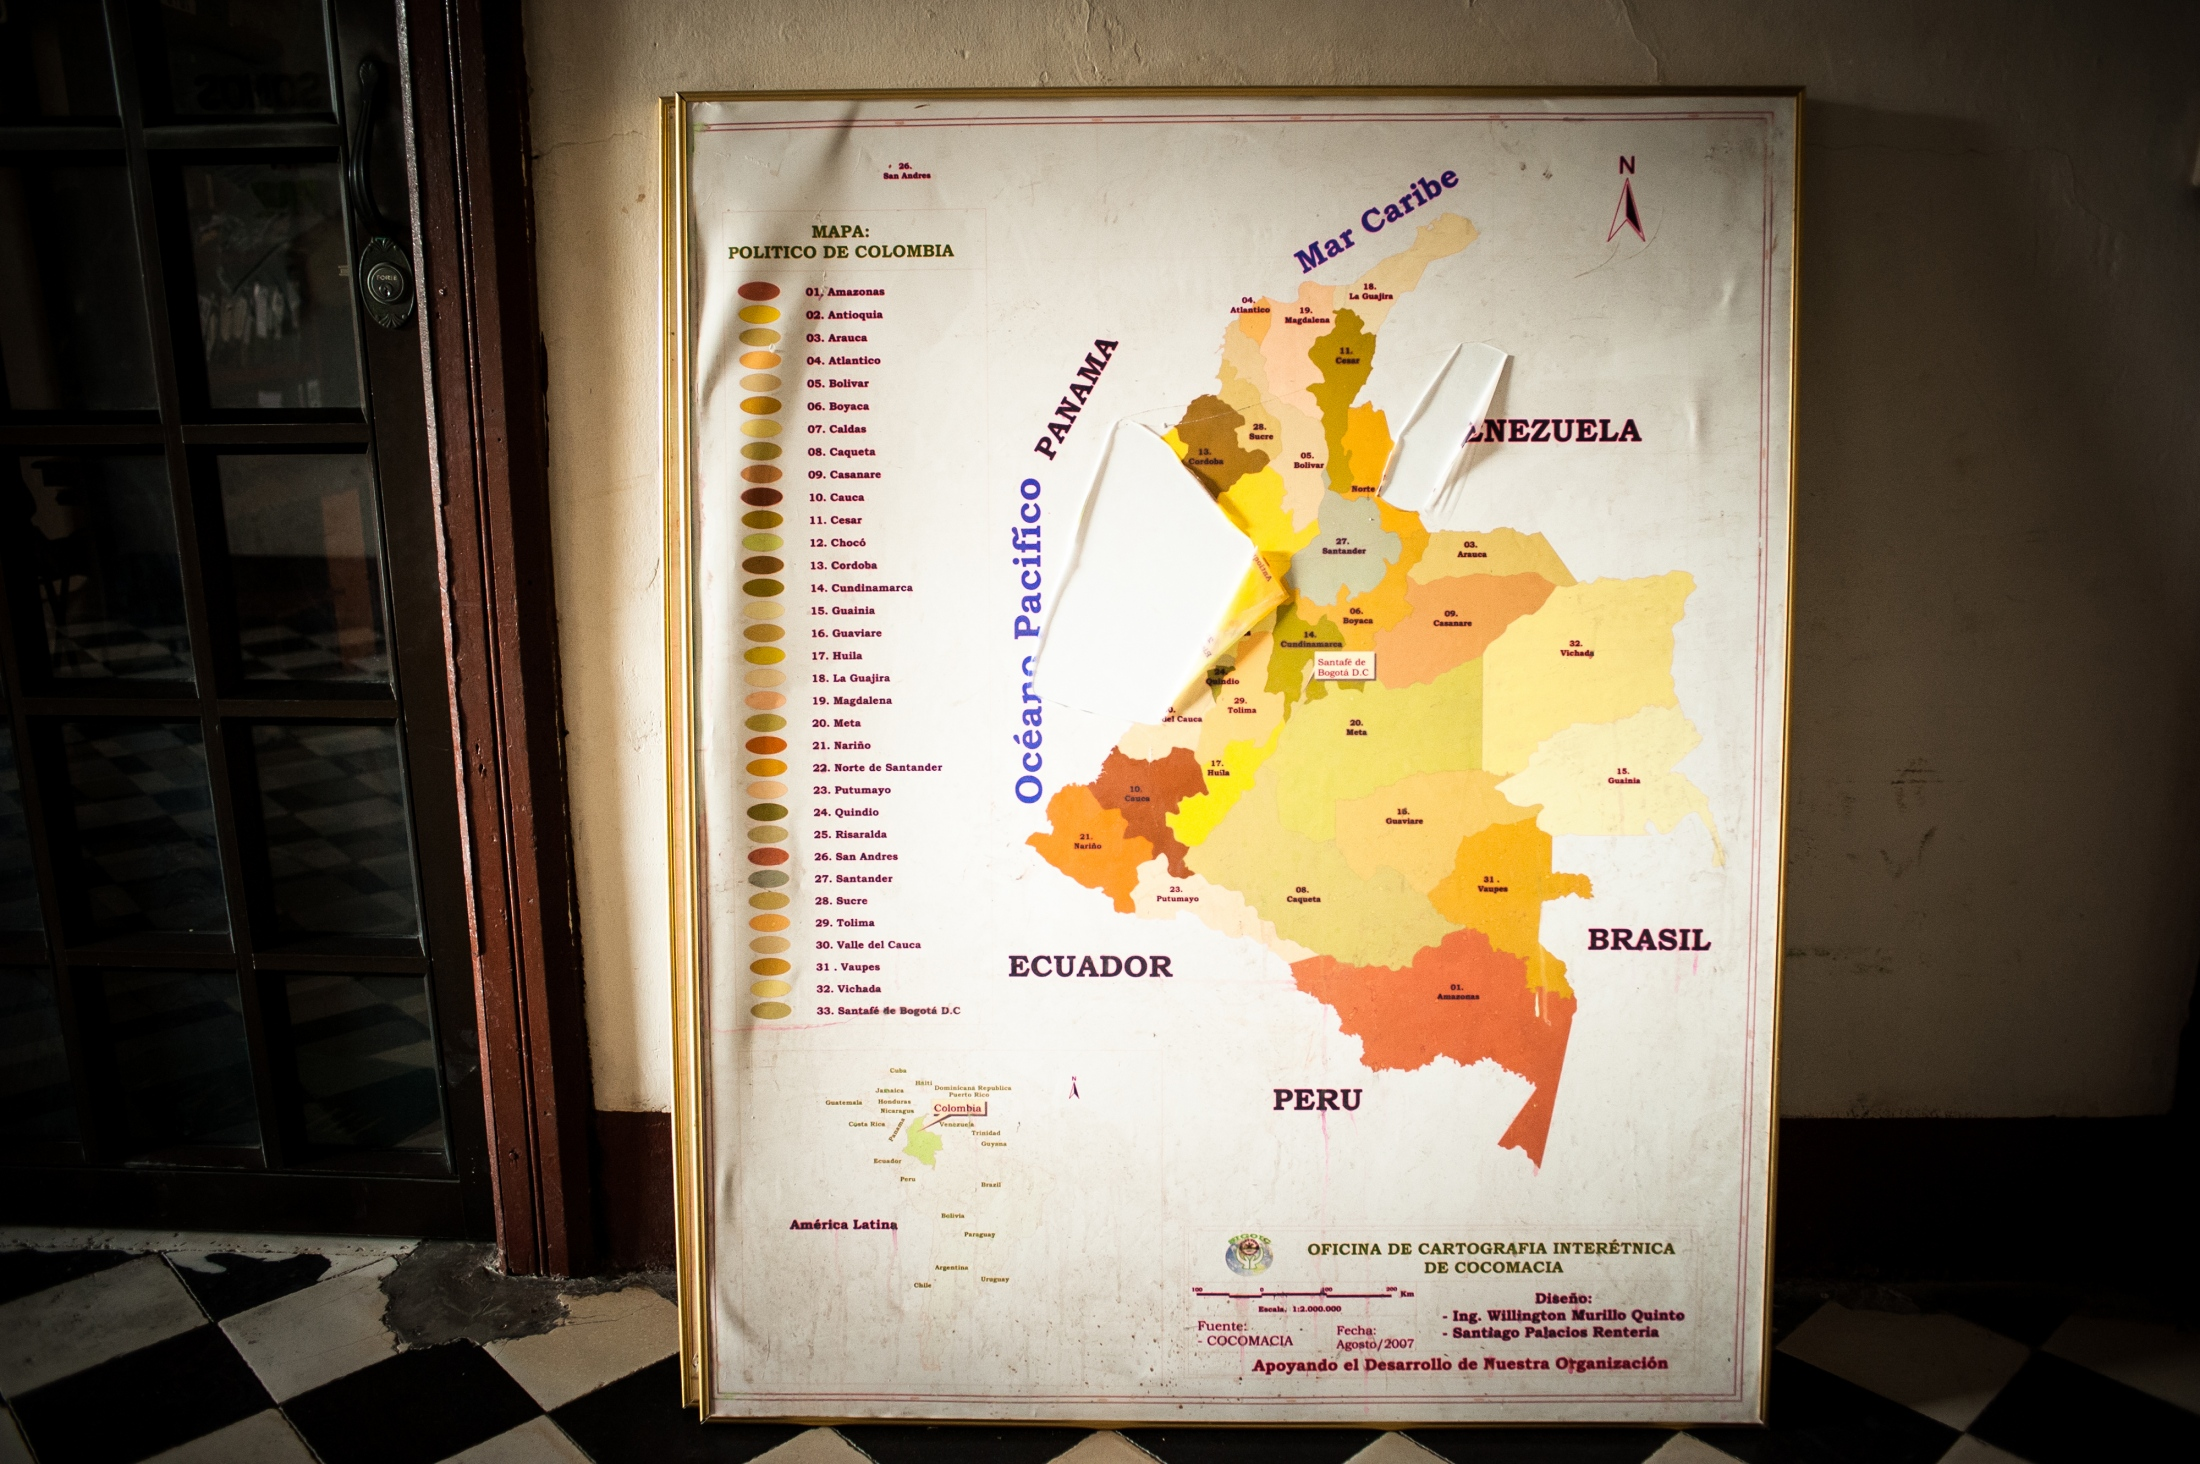 A map in the hallway where Juana works. The area where Chocó should be indicated is torn.